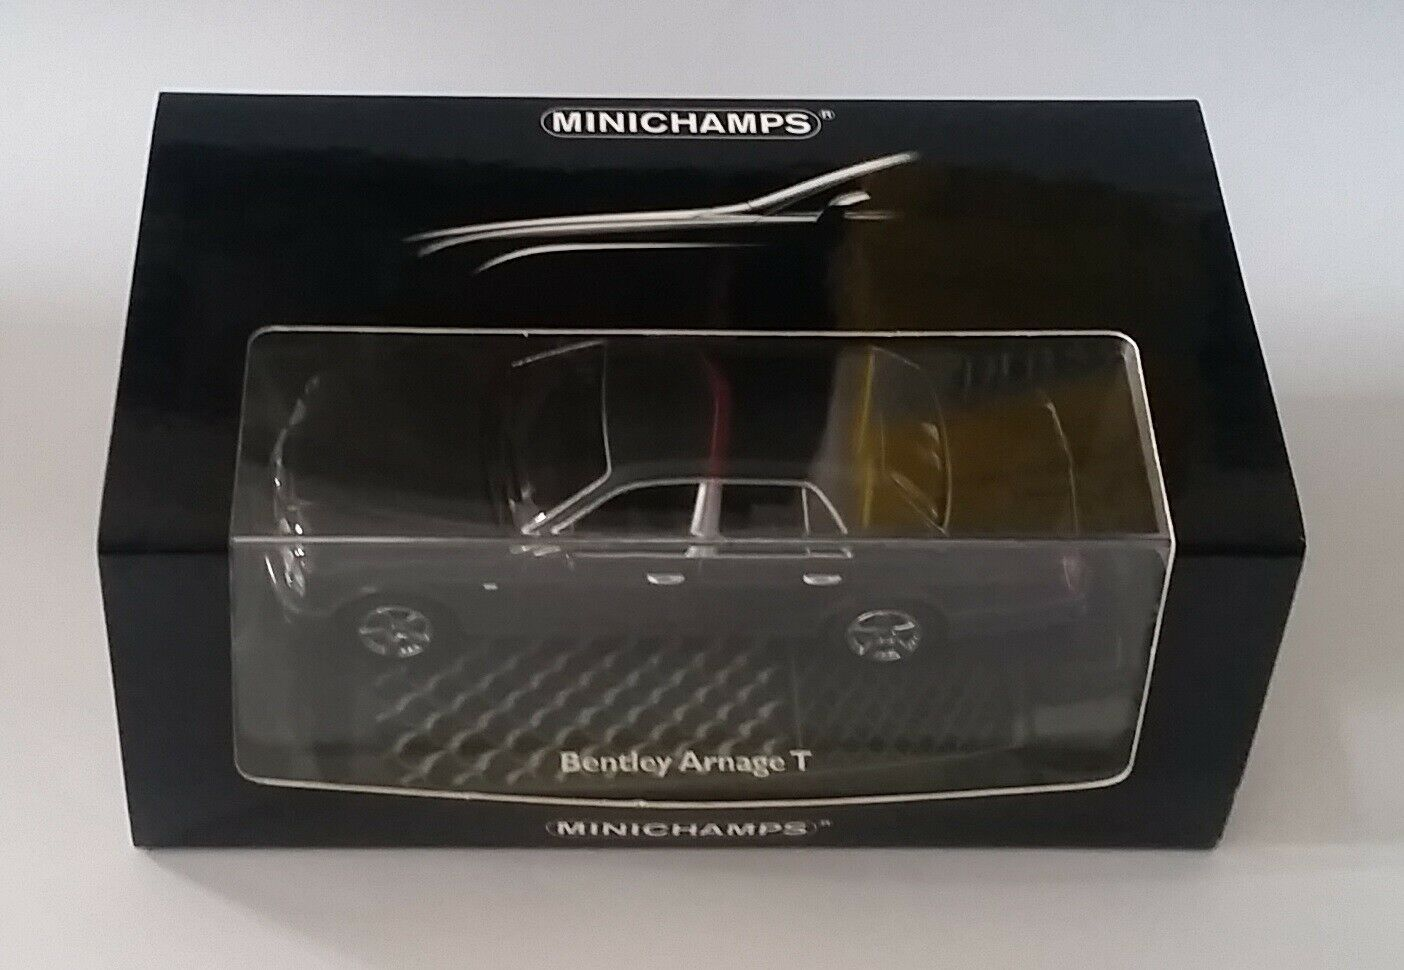 Minichamps 436 139071 Bentley Arnage T 2003 grå metall 1 43 Mint i ask